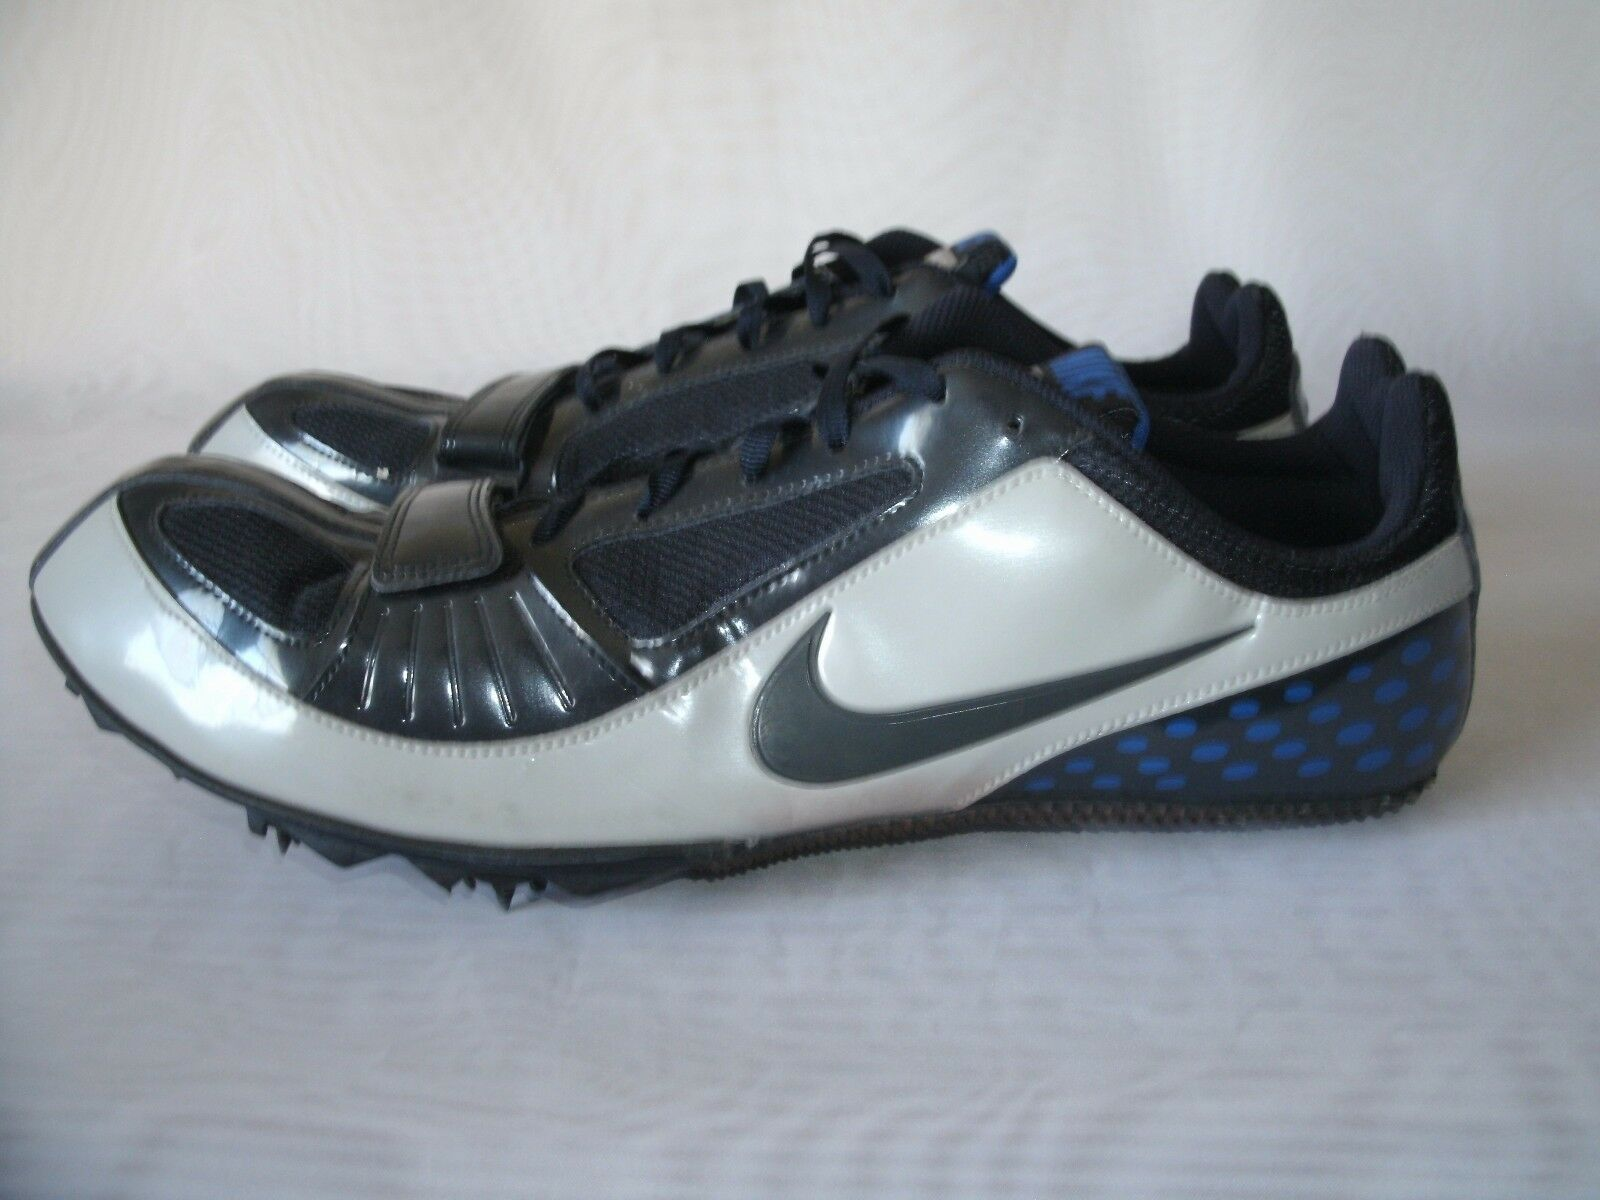 53cca29d7c136 ... NIKE ZOOM RIVAL S S S BOWERMAN SERIES SPIKES CLEATS   SIZE US 15    MEN S c00fcd ...